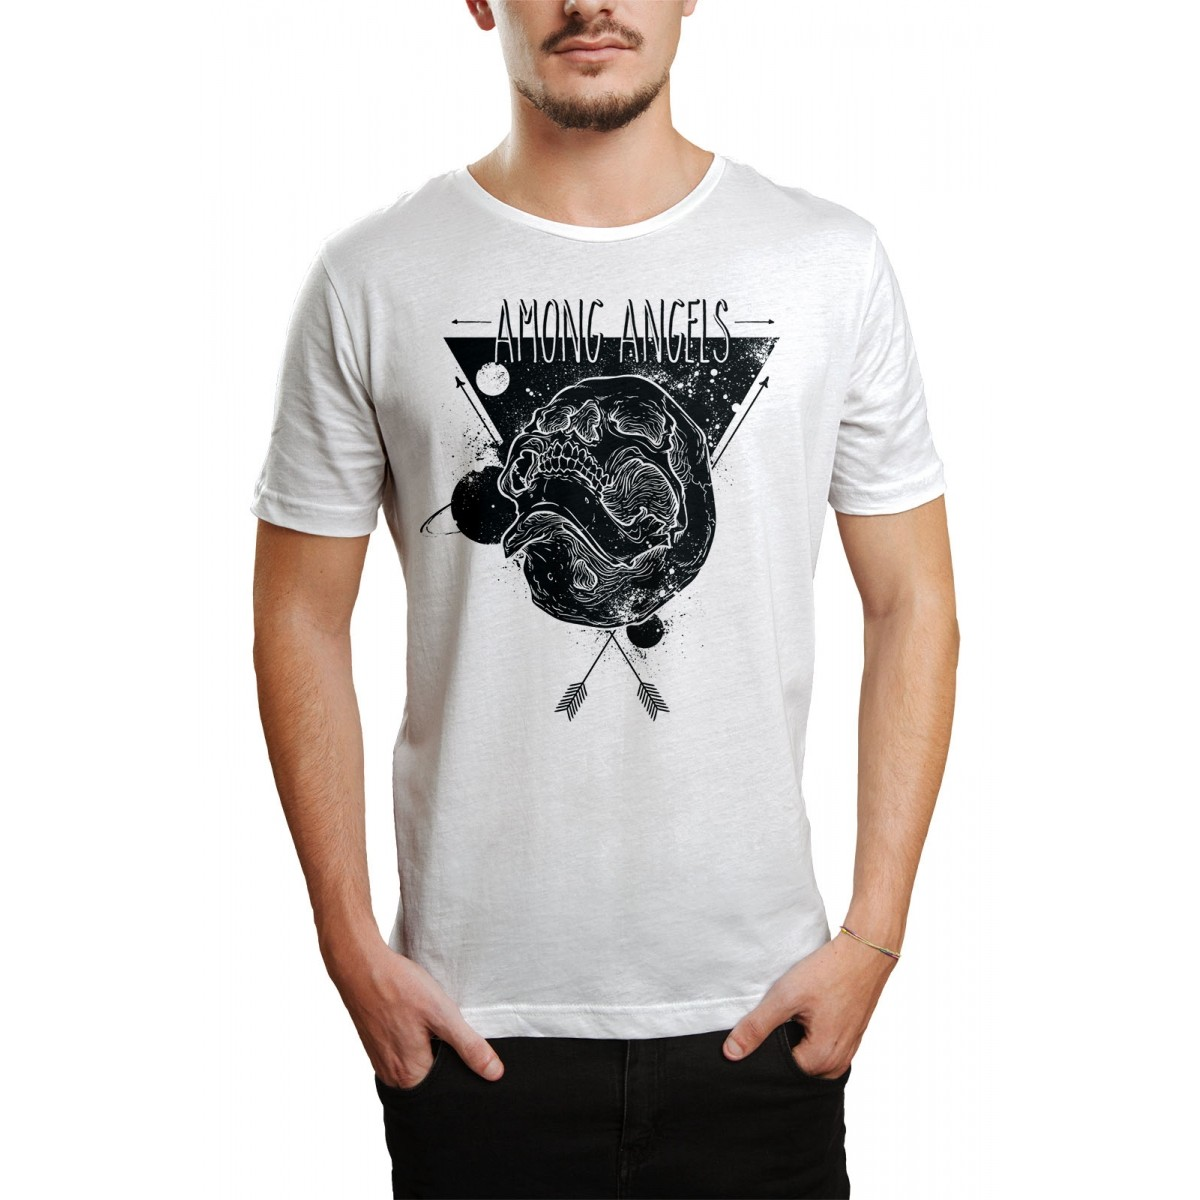 Camiseta HShop Among Angels Branca  - HShop